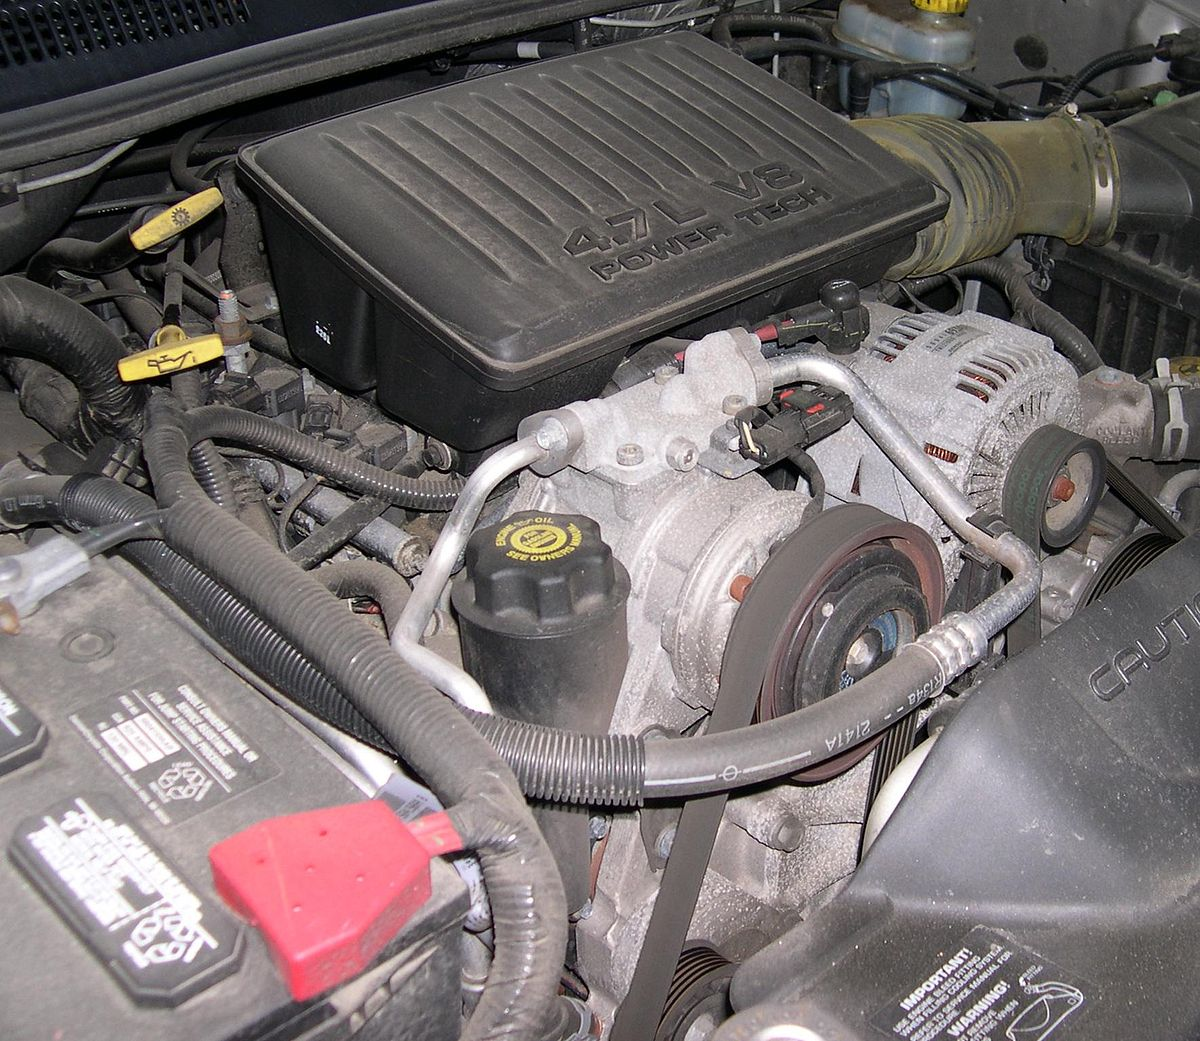 chrysler powertech engine wikipedia rh en wikipedia org 5 7 Liter HEMI V8 Dodge 5.7 Hemi Engine Problems